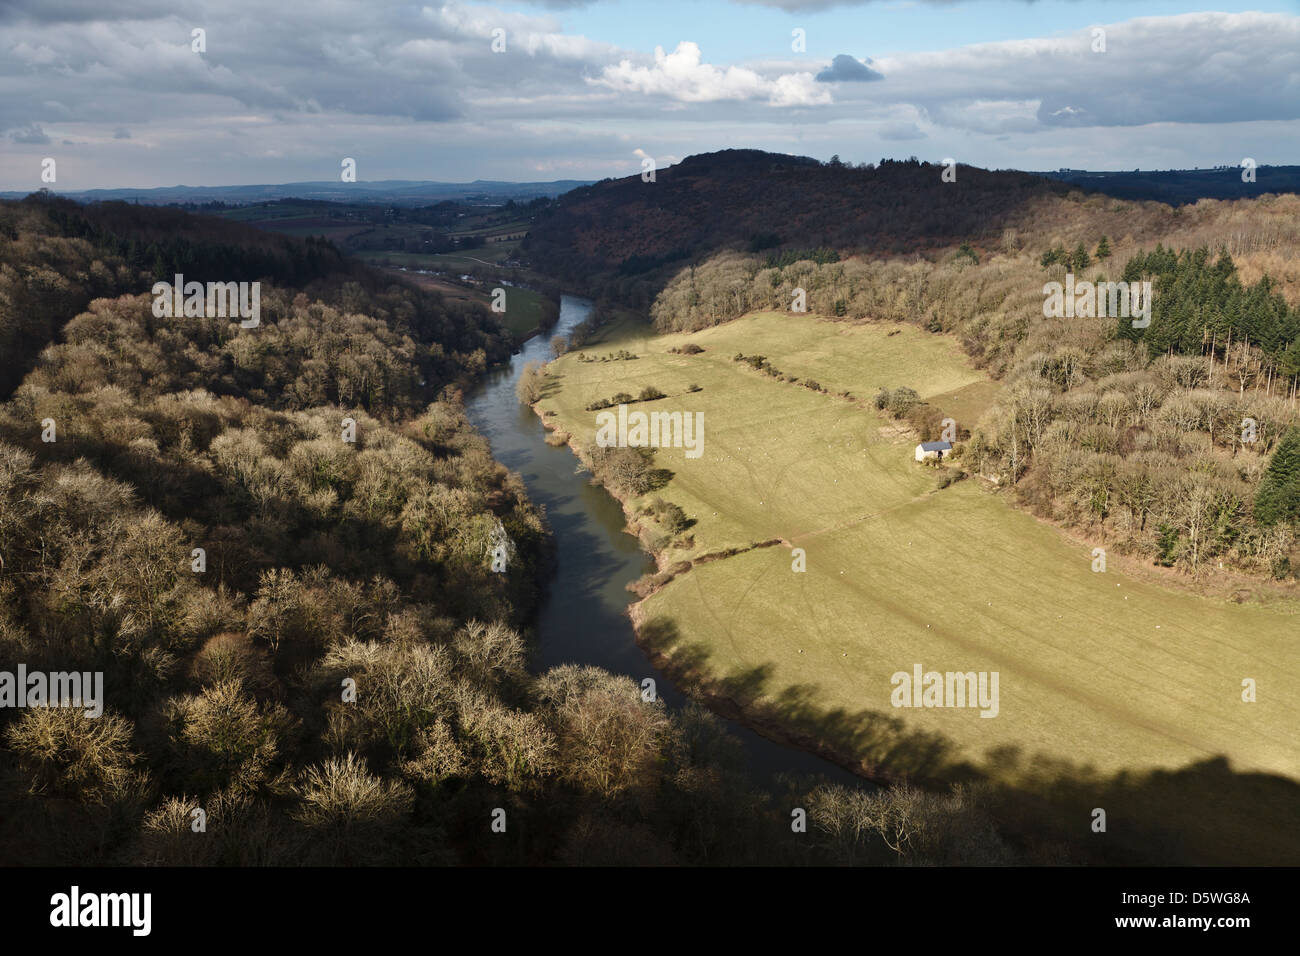 River Wye from Yat Rock, Symonds Yat, Forest of Dean, Gloucestershire, England - Stock Image